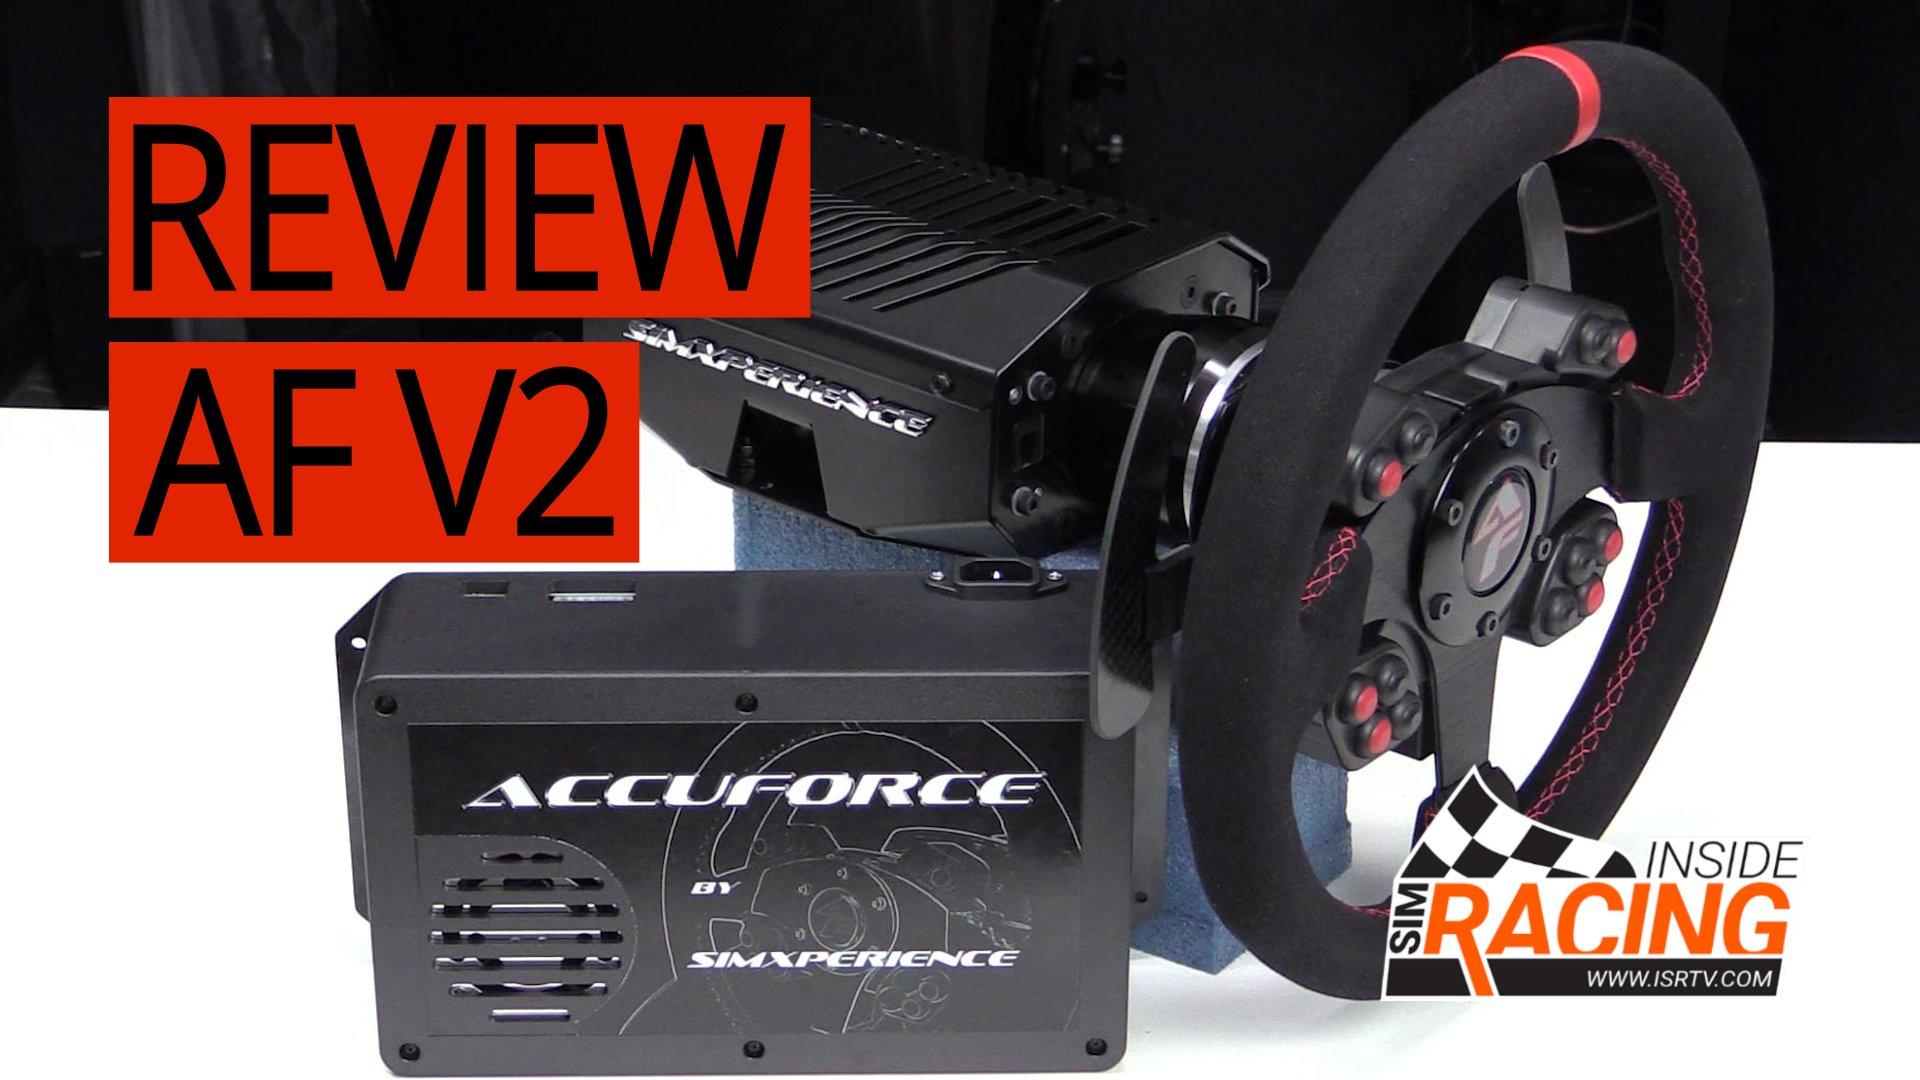 SimXperience AccuForce Pro V2 Direct Drive Wheel Review